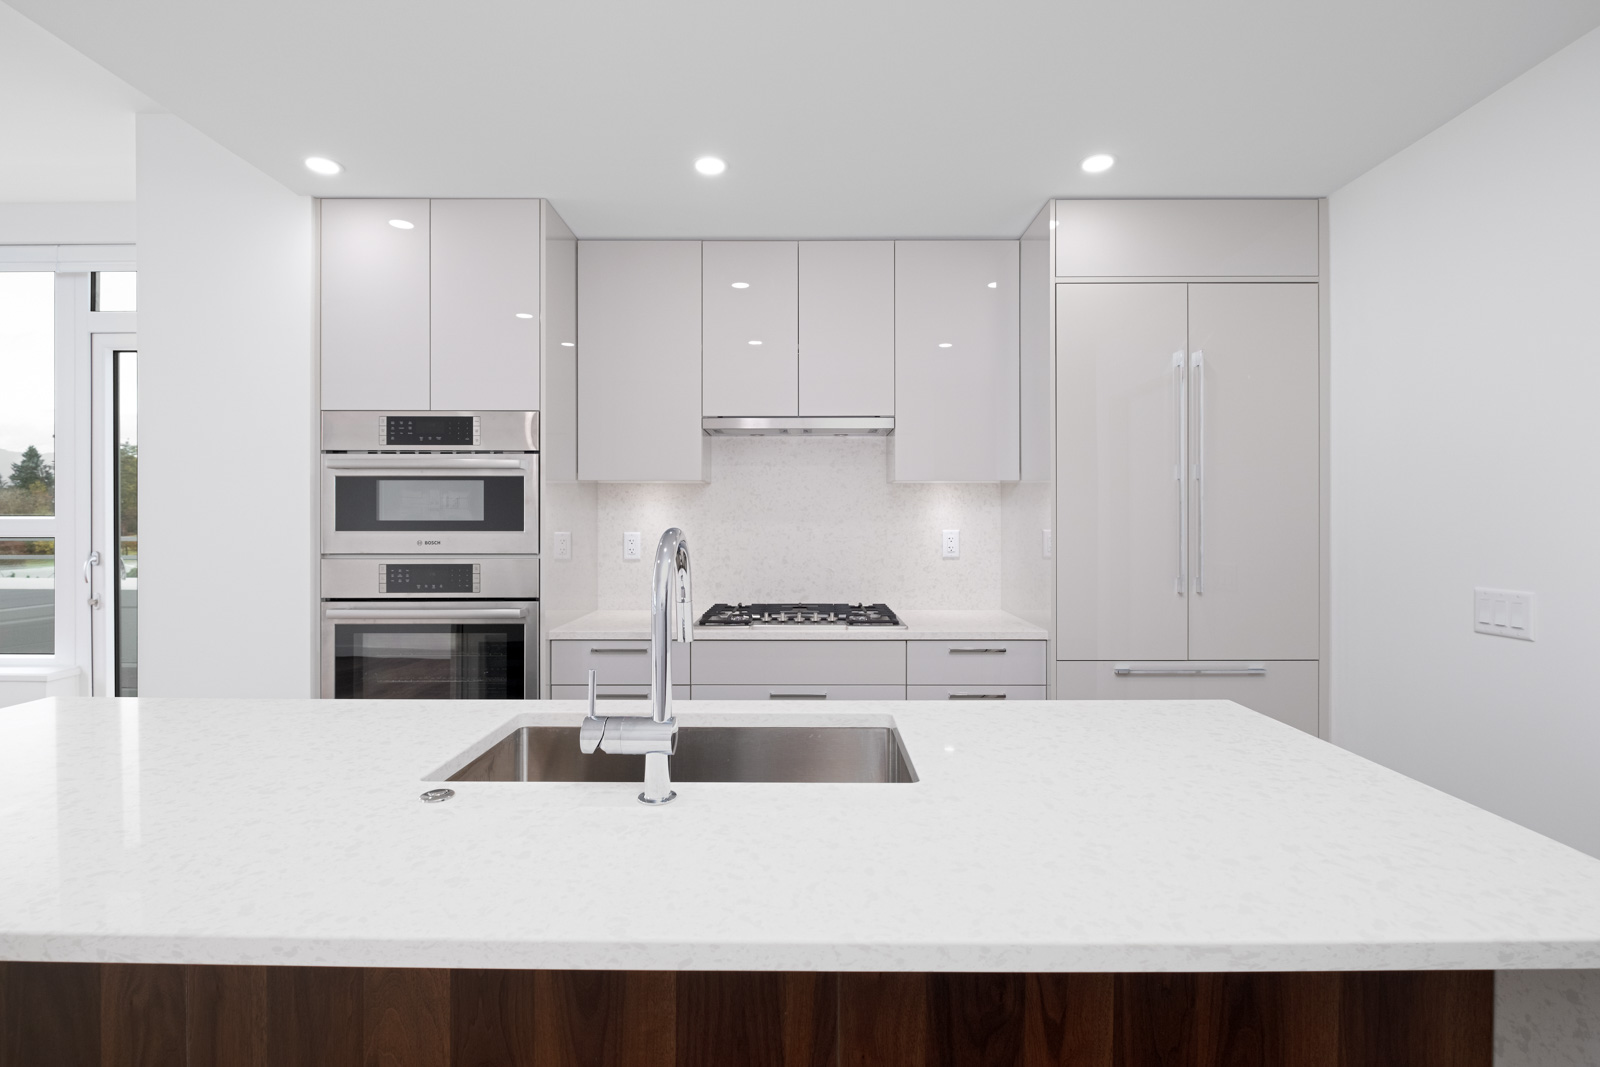 kitchen with quartz countertops in brand new rental condo apartment of basalt developed by pennyfarthing homes in vancouver westside